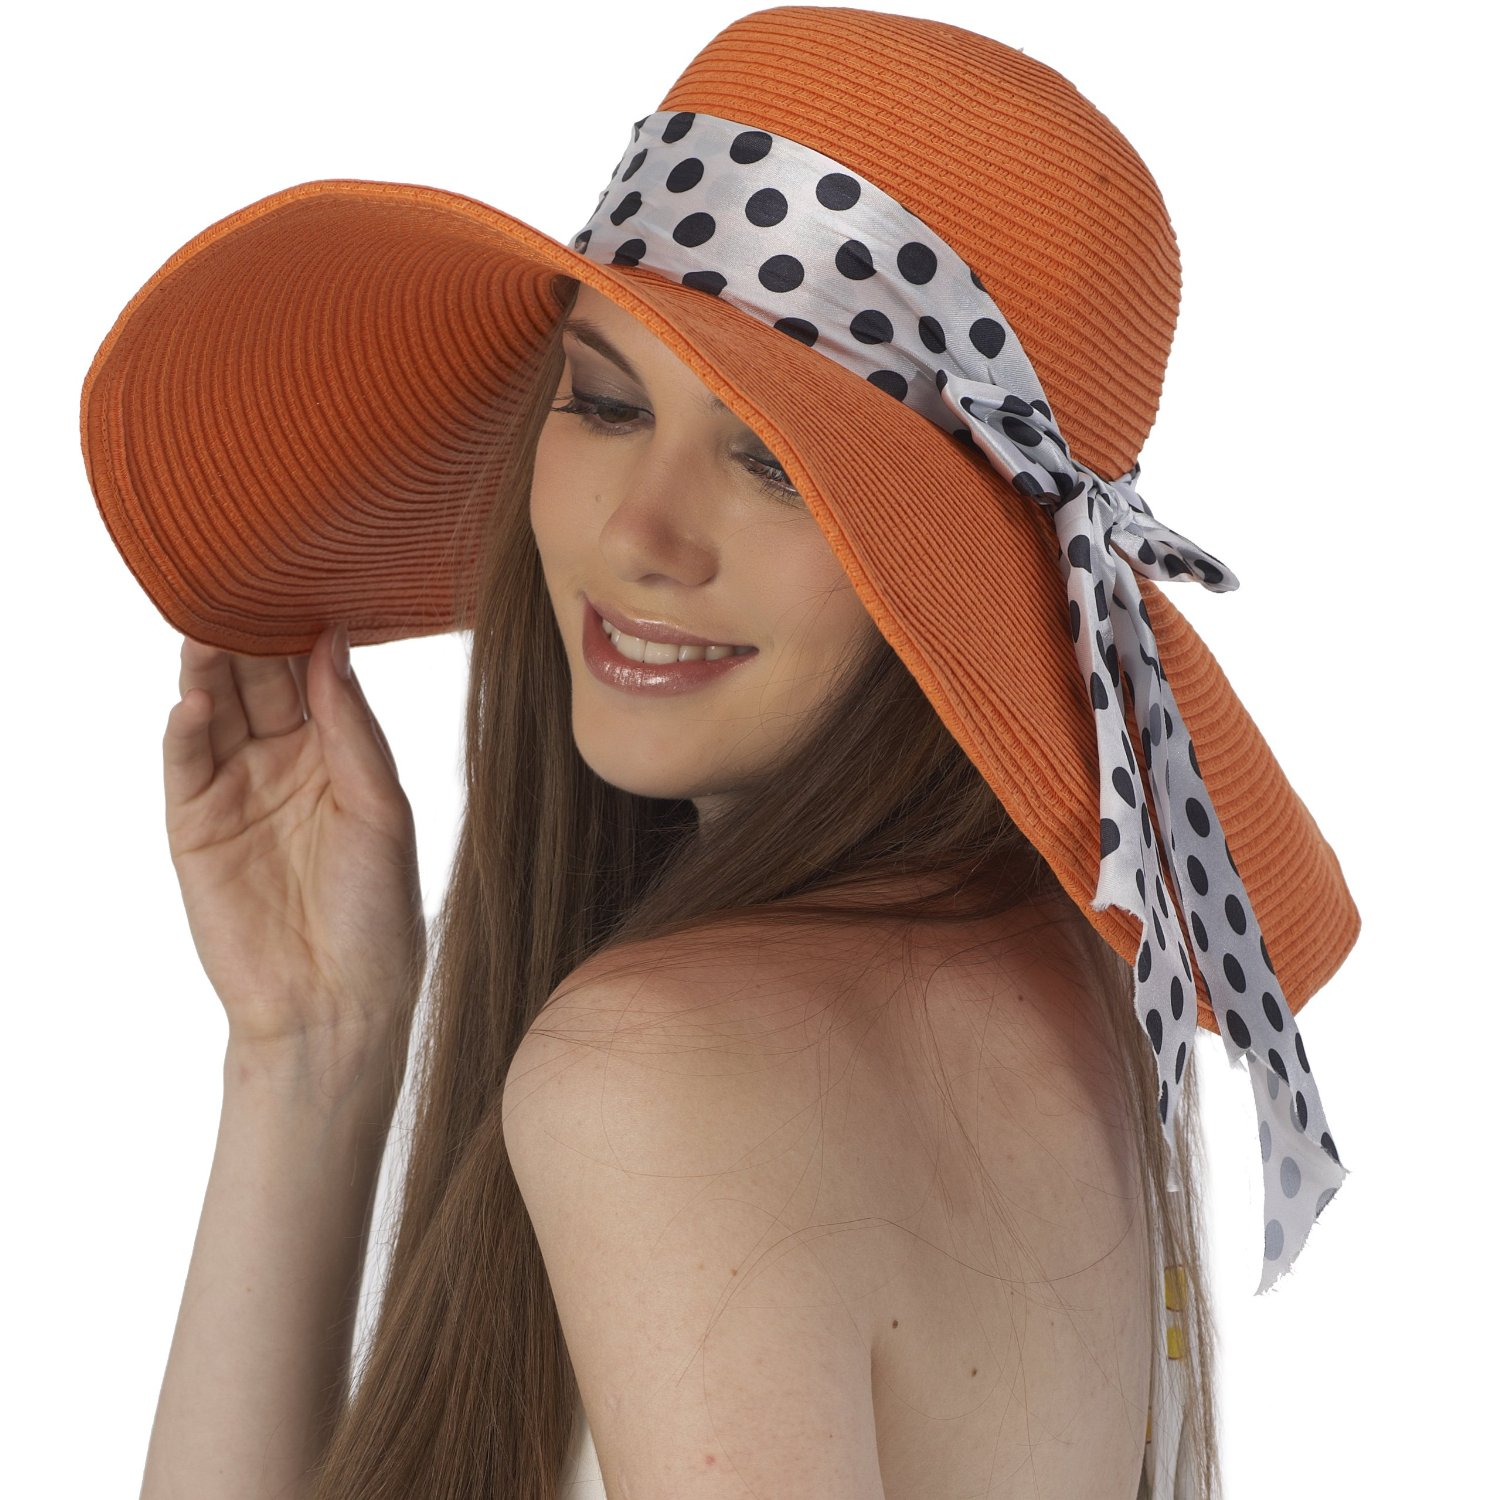 Sexy Summer Hats for Women